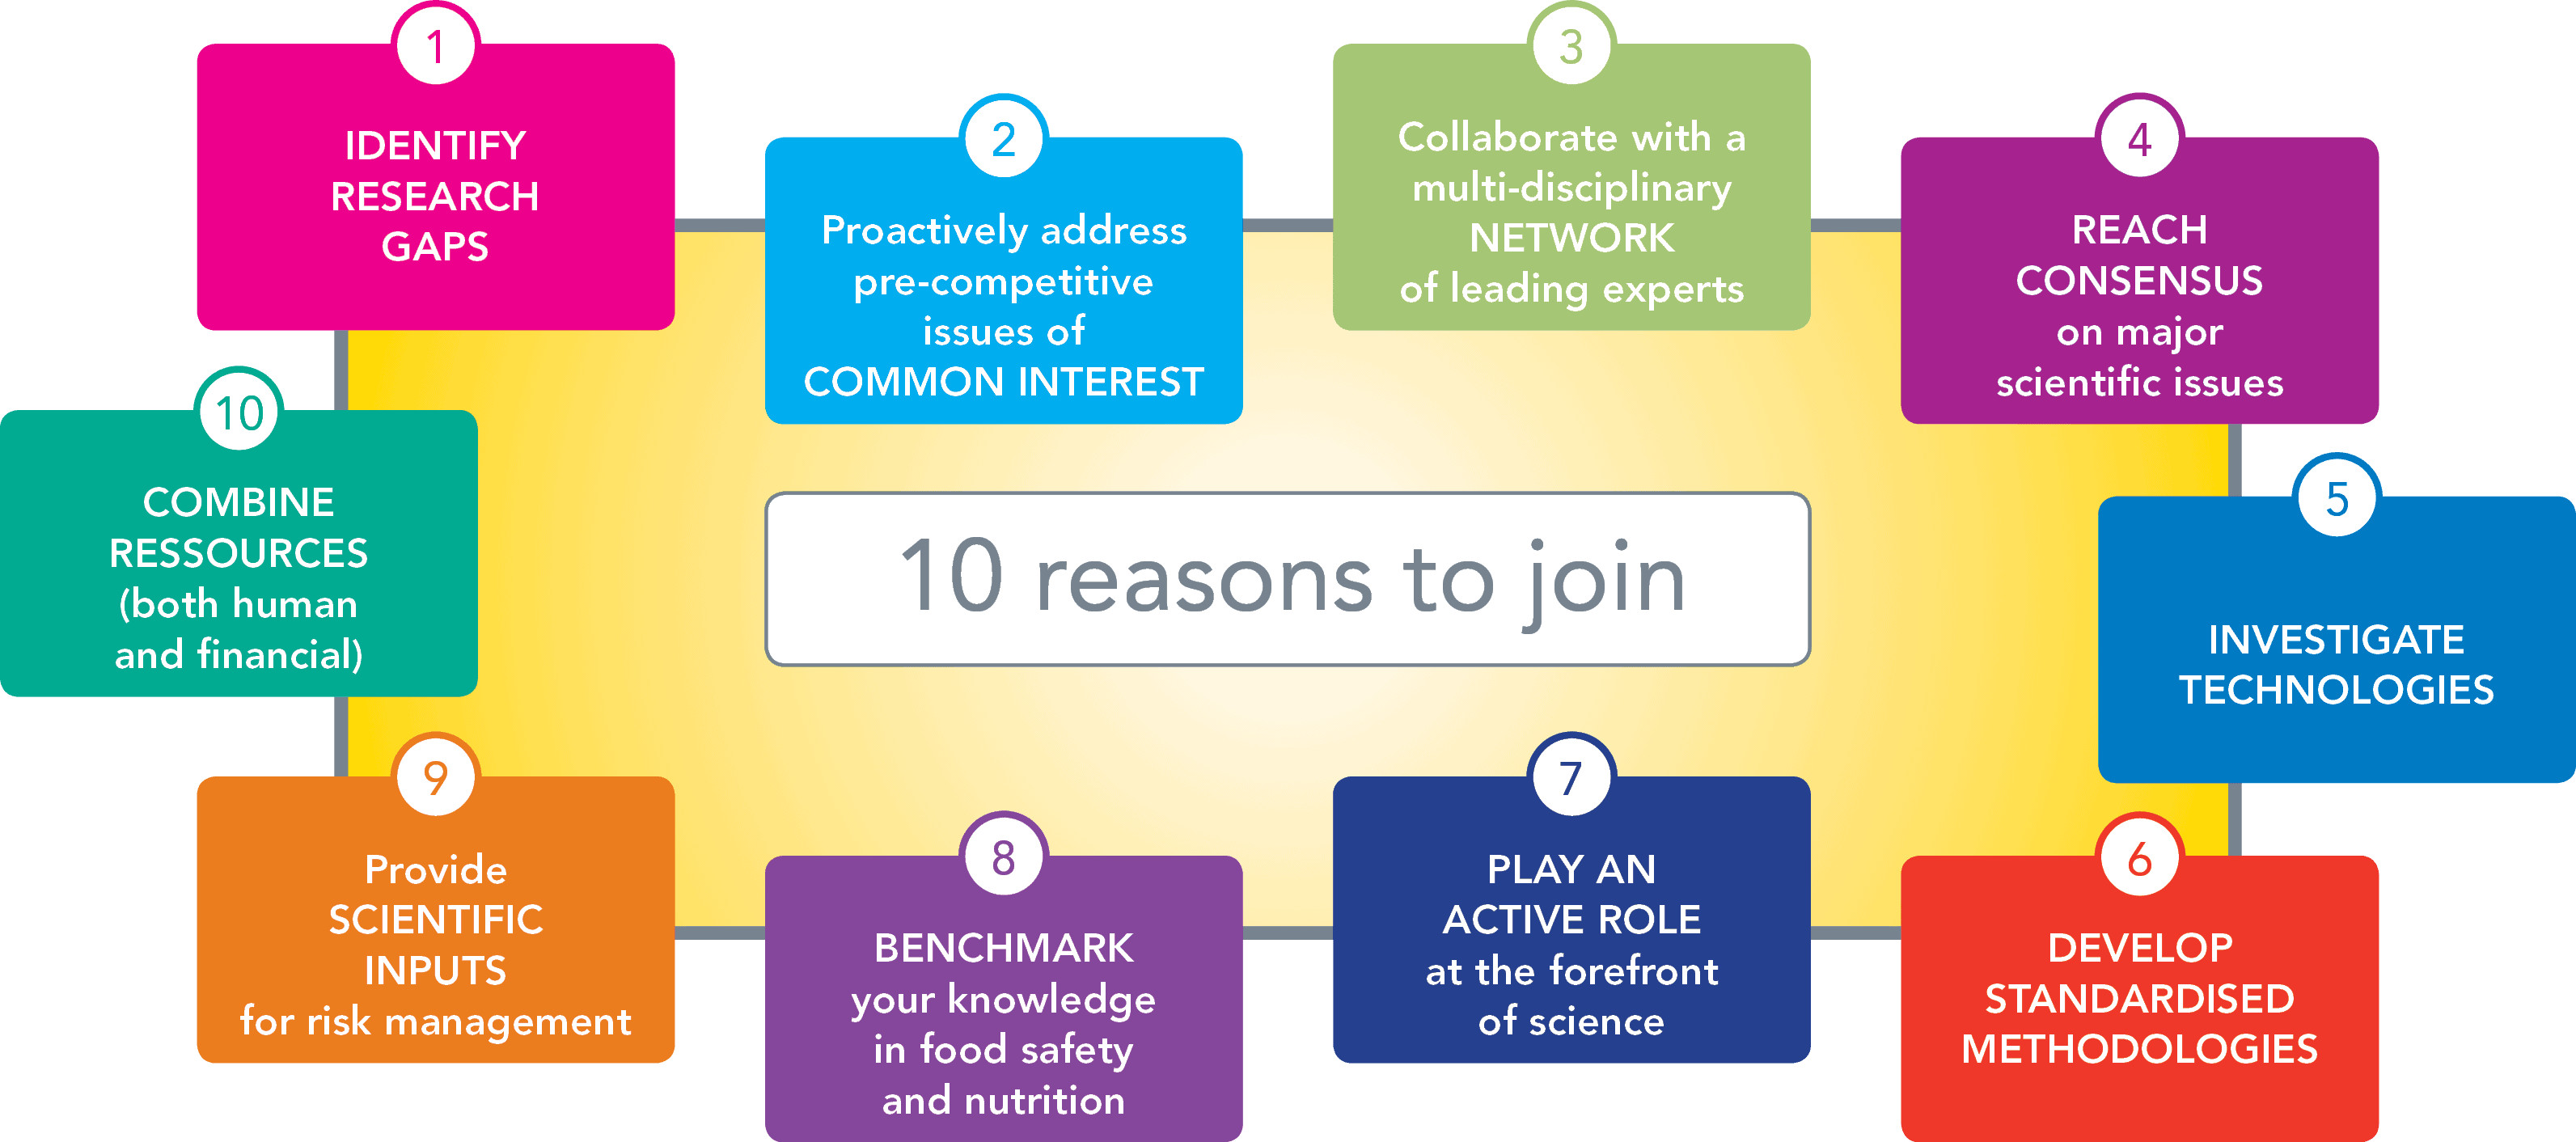 10 reasons to join